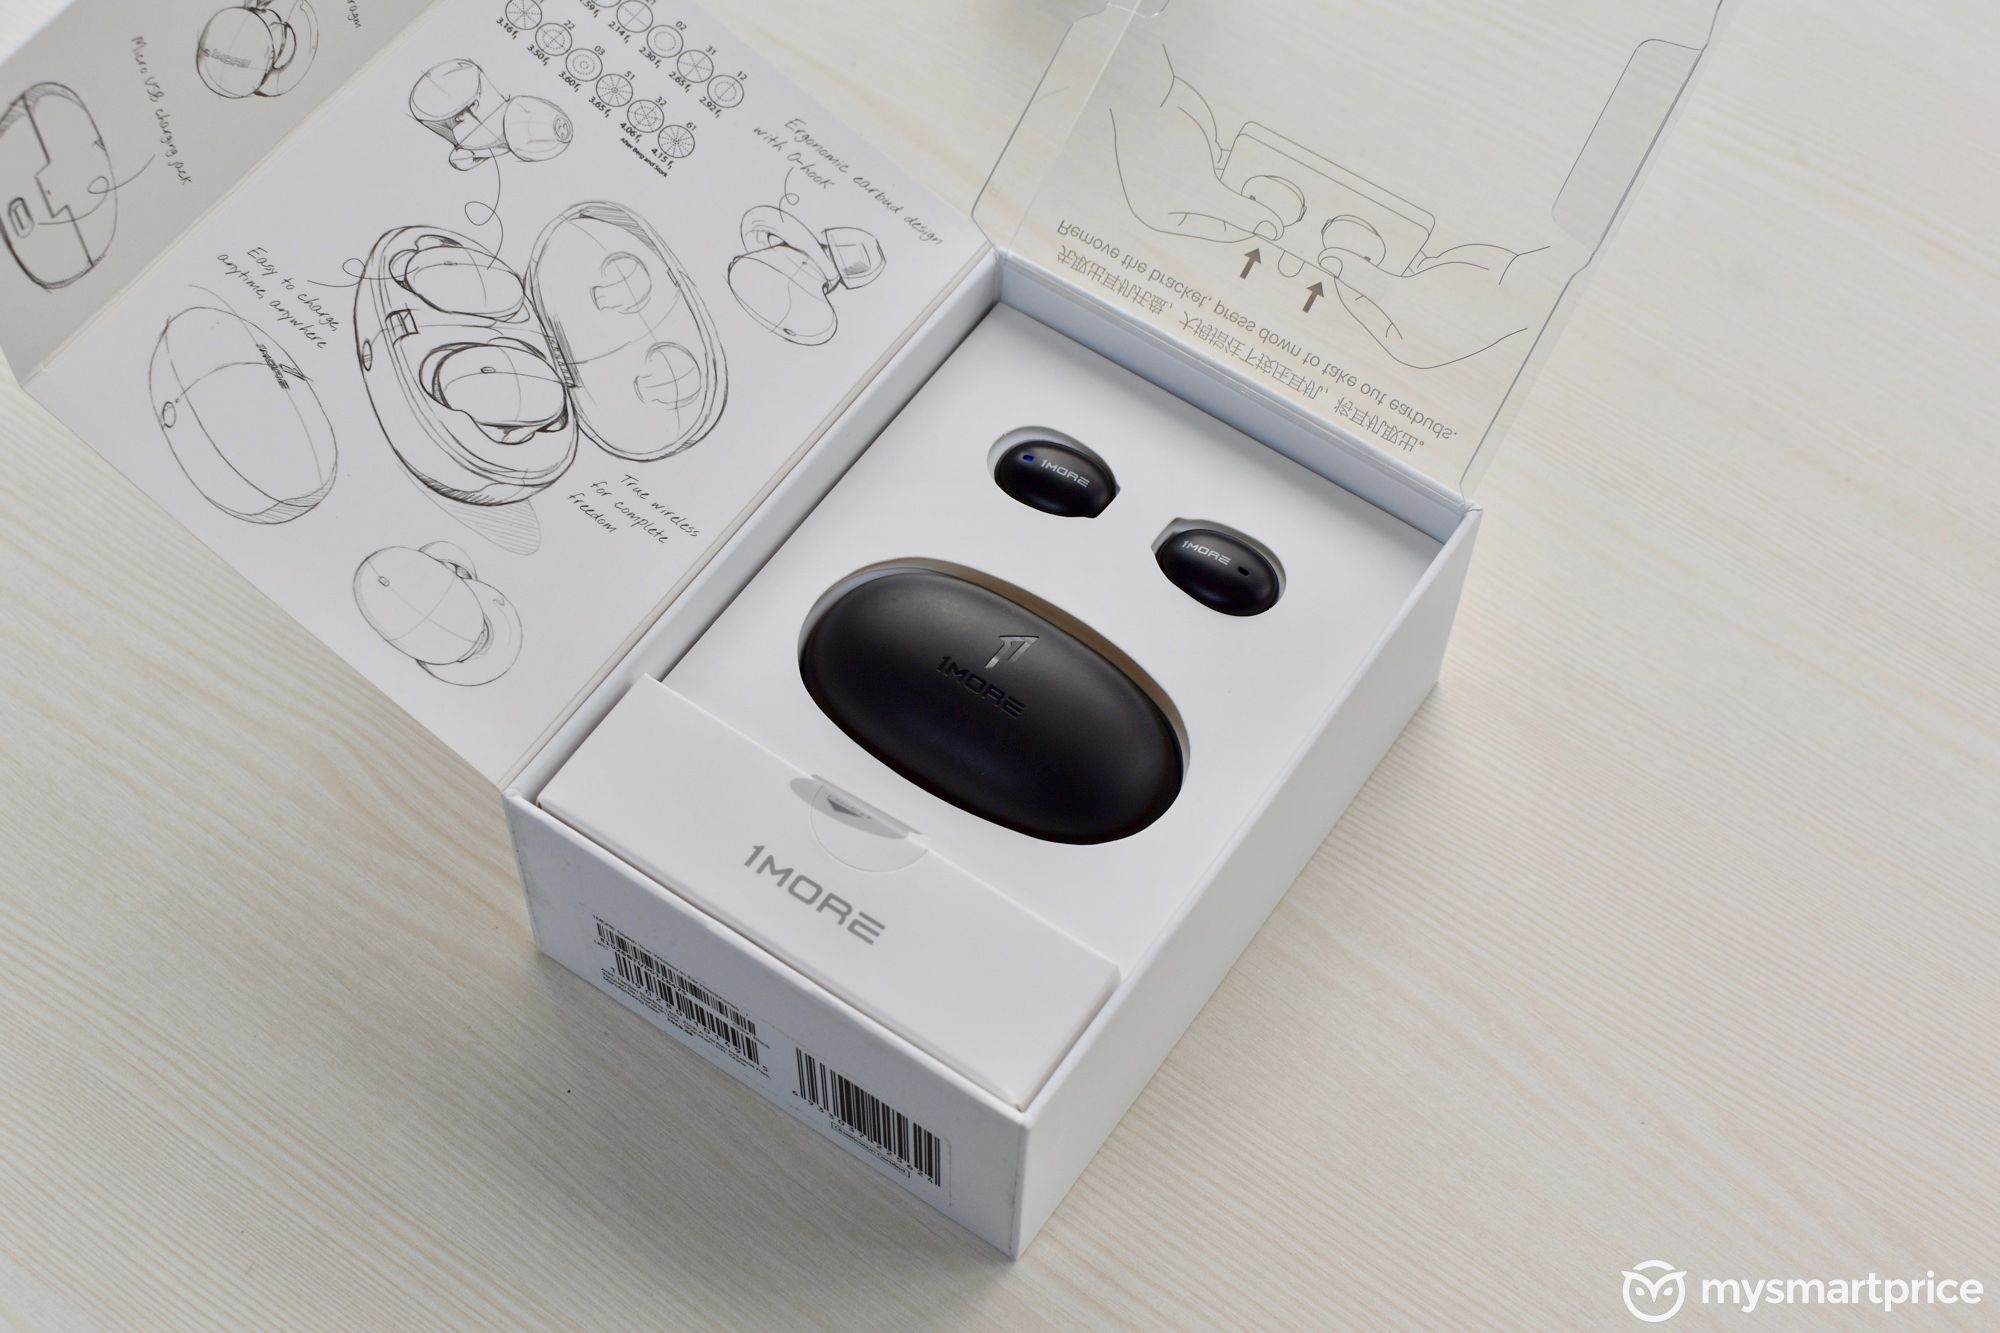 1More Stylish True Wireless Earbuds Box Opened